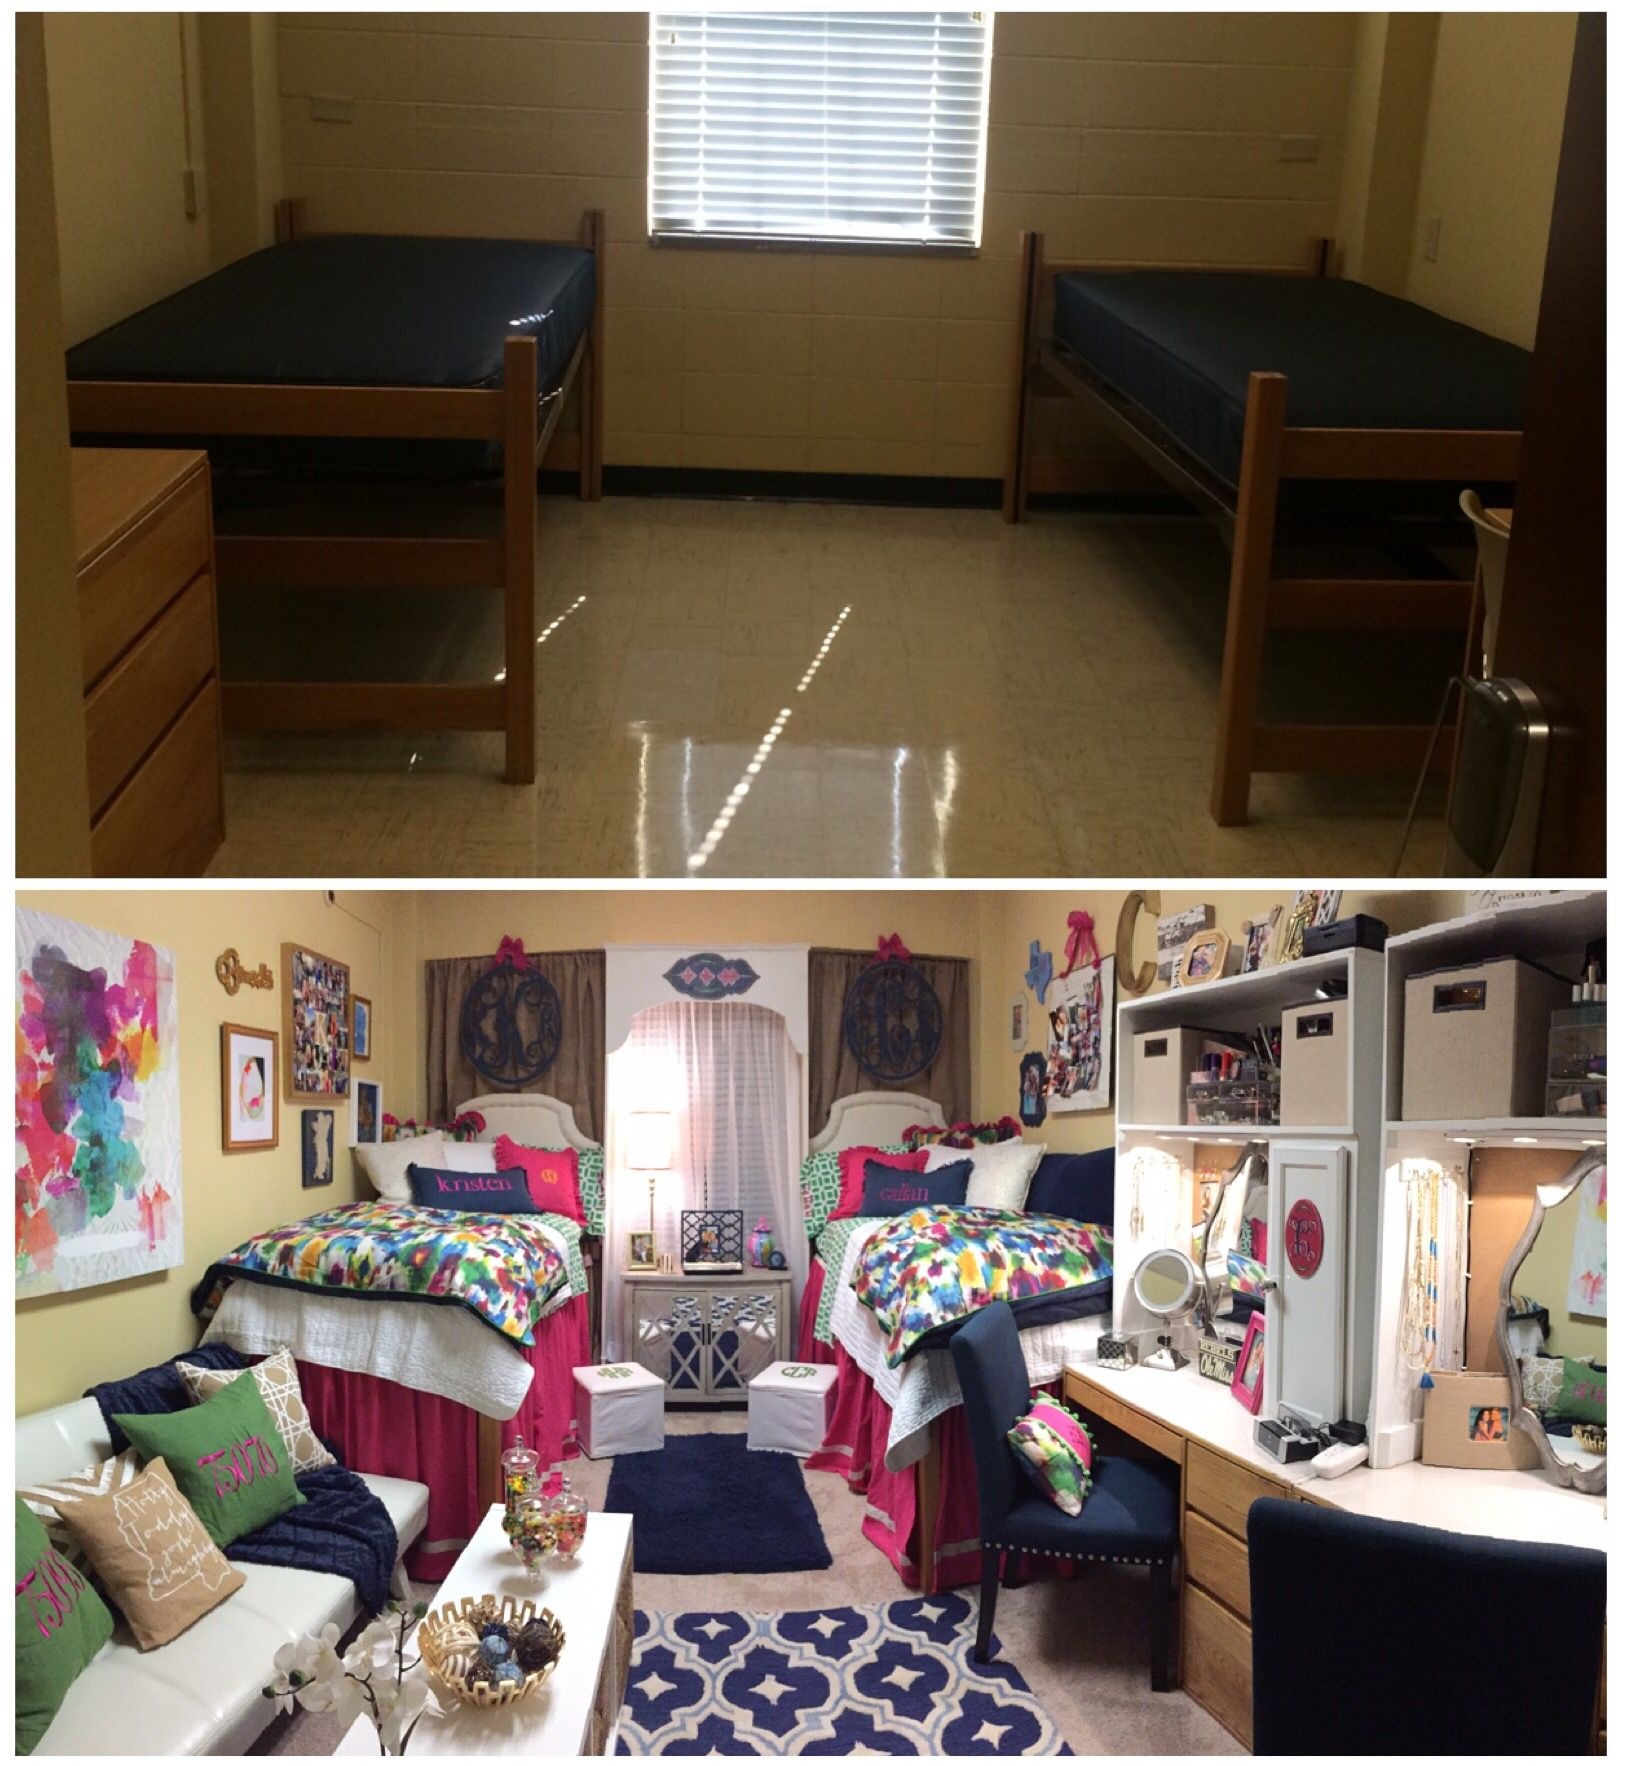 11-before-and-after-dorm-pics-6.jpg